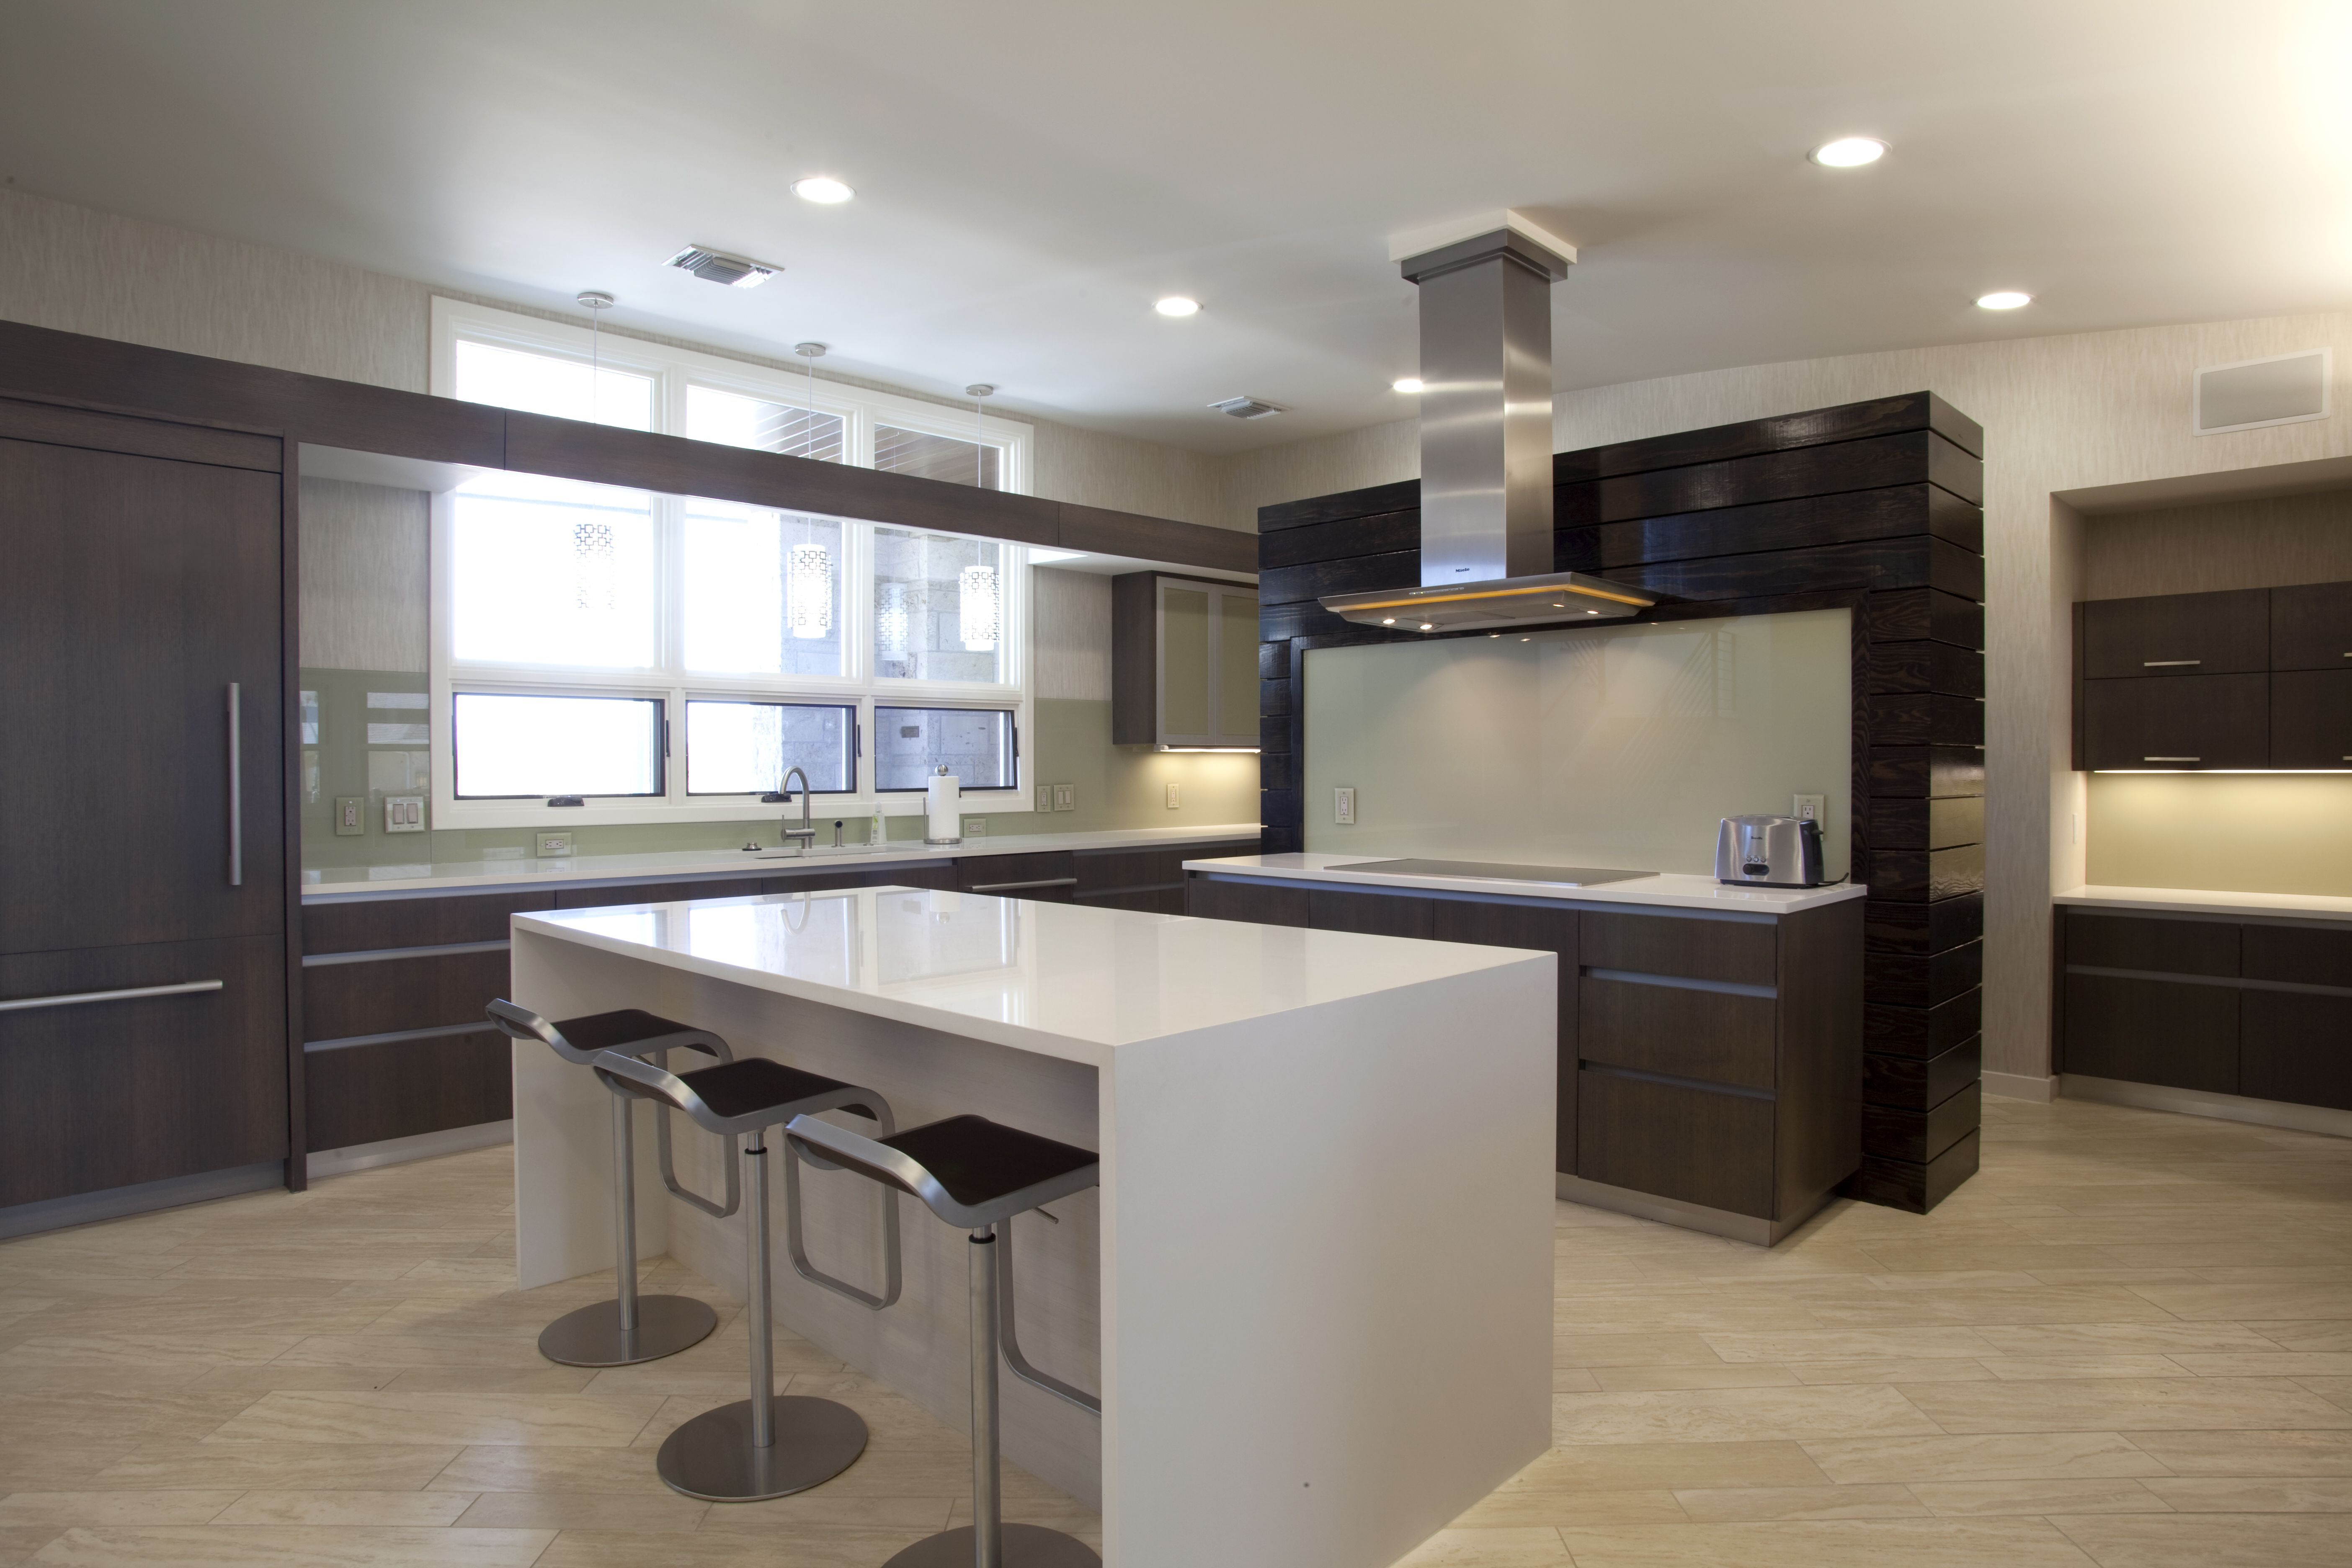 white quartz countertop in showing the luxurious kitchen white modern kitchen floor tiles modern - Modern Kitchen Counter